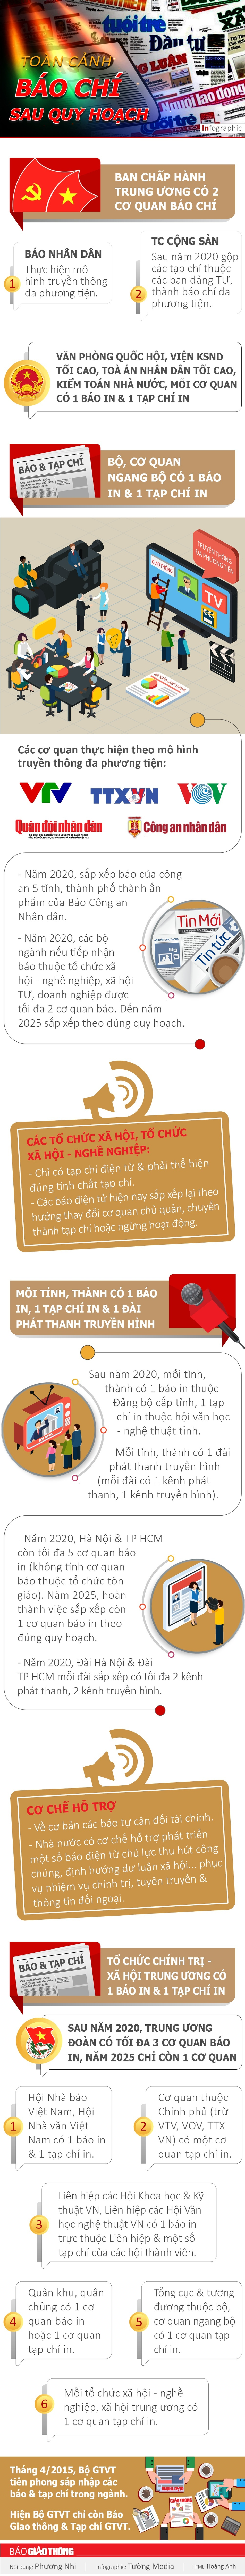 infographic toan canh bao chi sau quy hoach